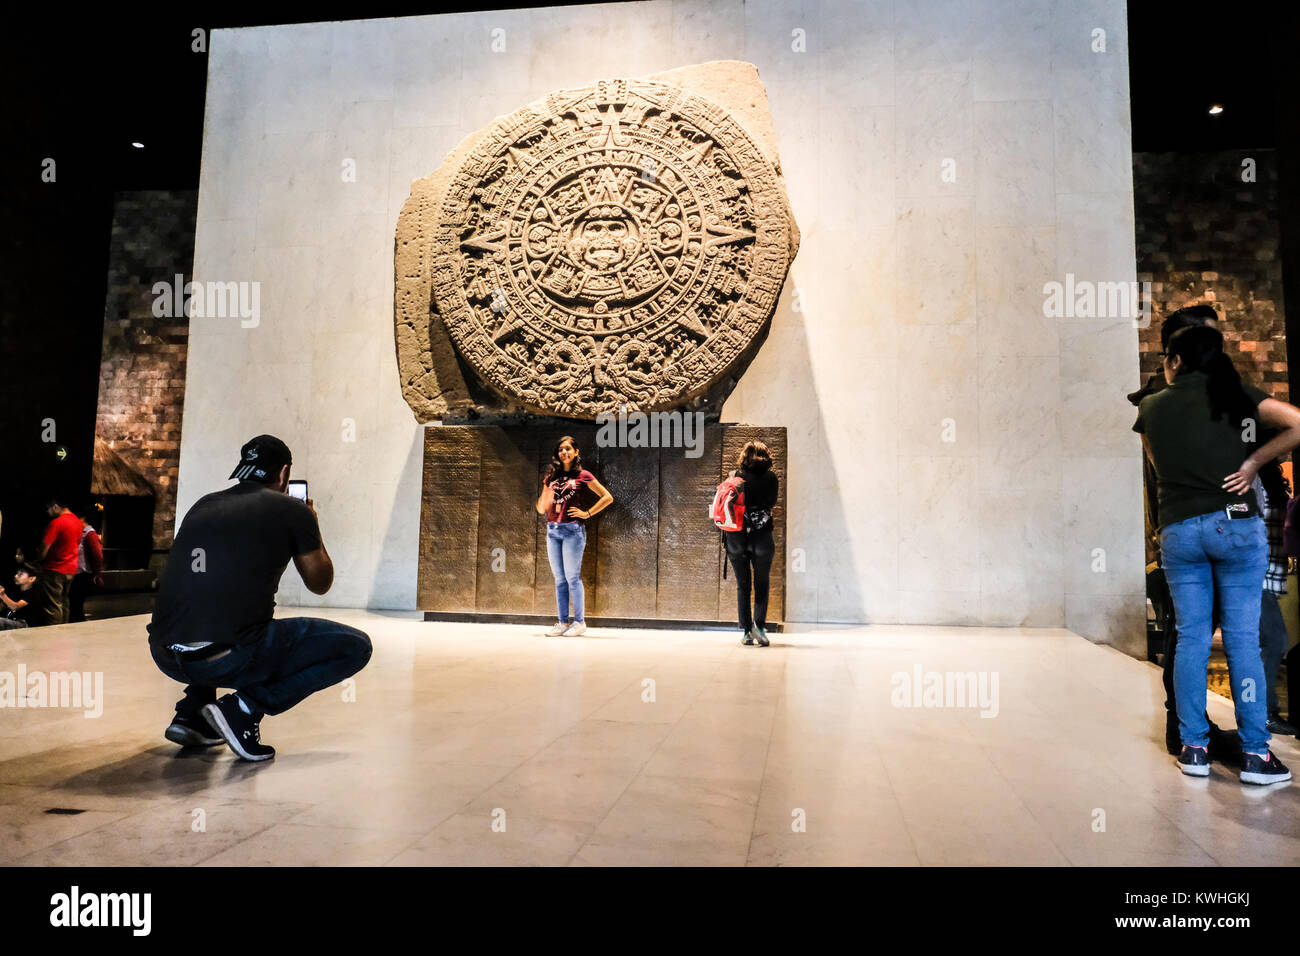 Tourist posing in front of the Sun Stone at the National Museum of Anthropology of Mexico Stock Photo